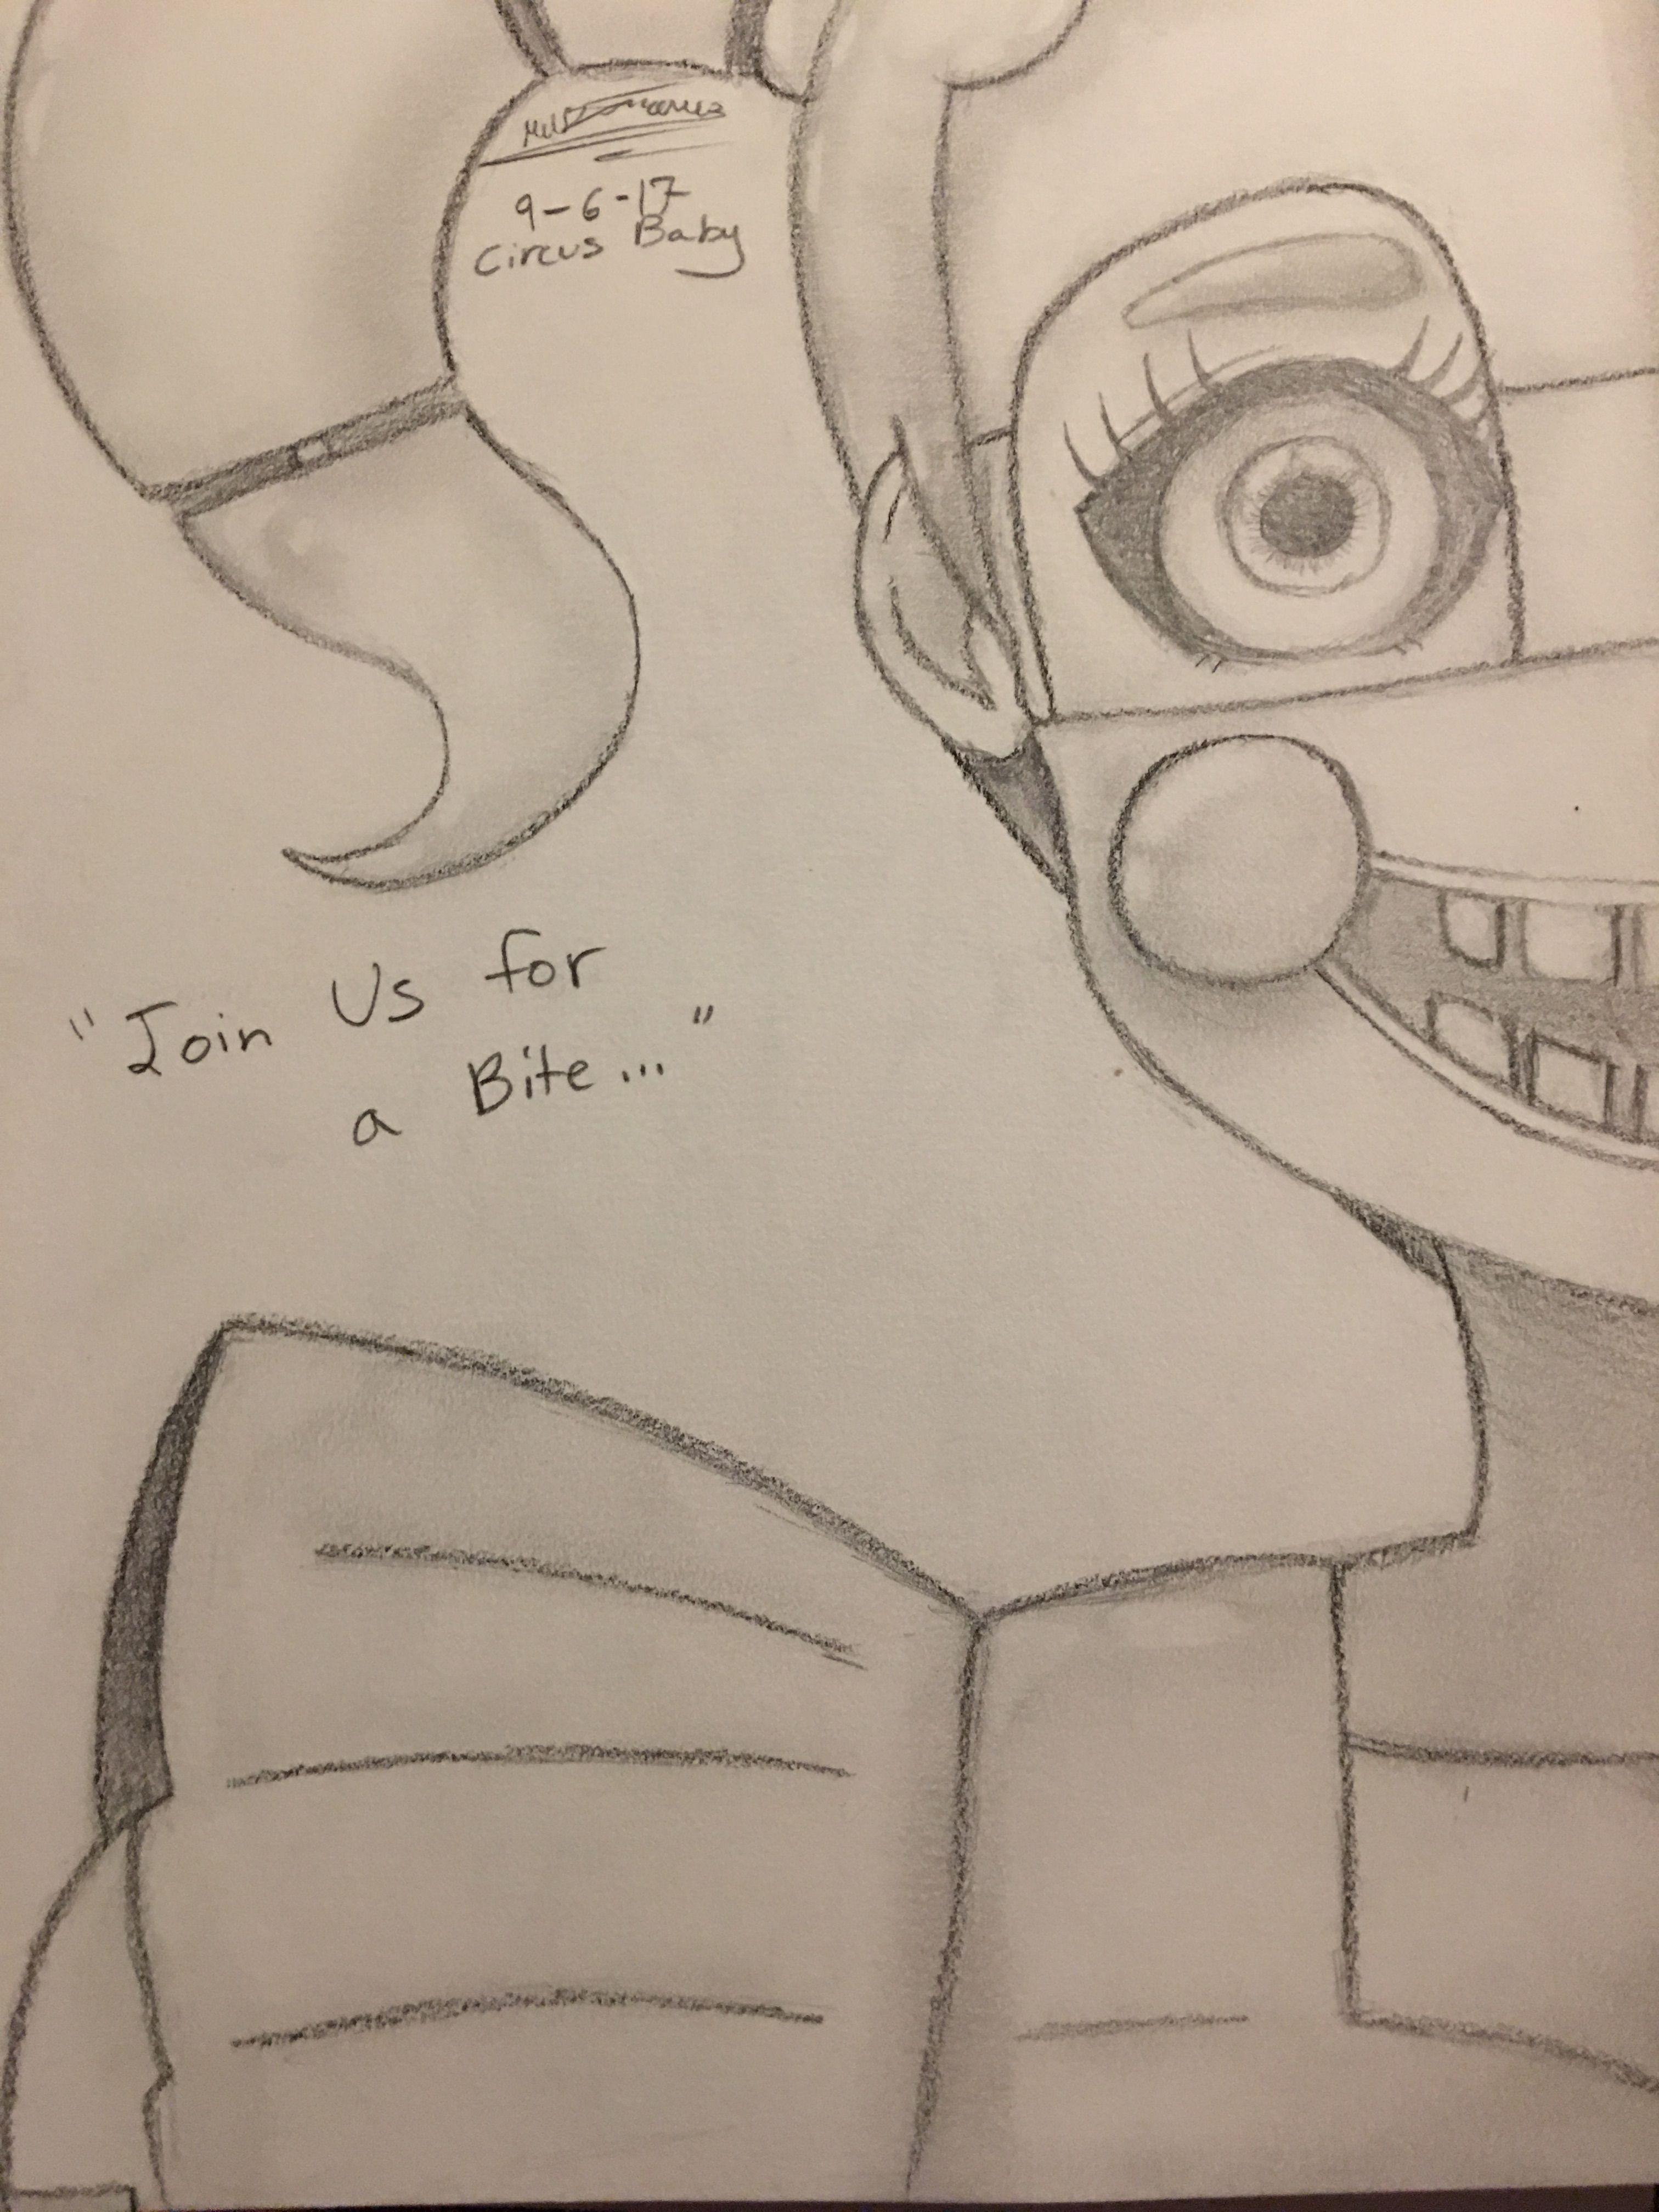 Five Nights At Freddy S Sister Location Circus Baby Anime Fan Art Circus Baby Freddy S Five Nights At Freddy S